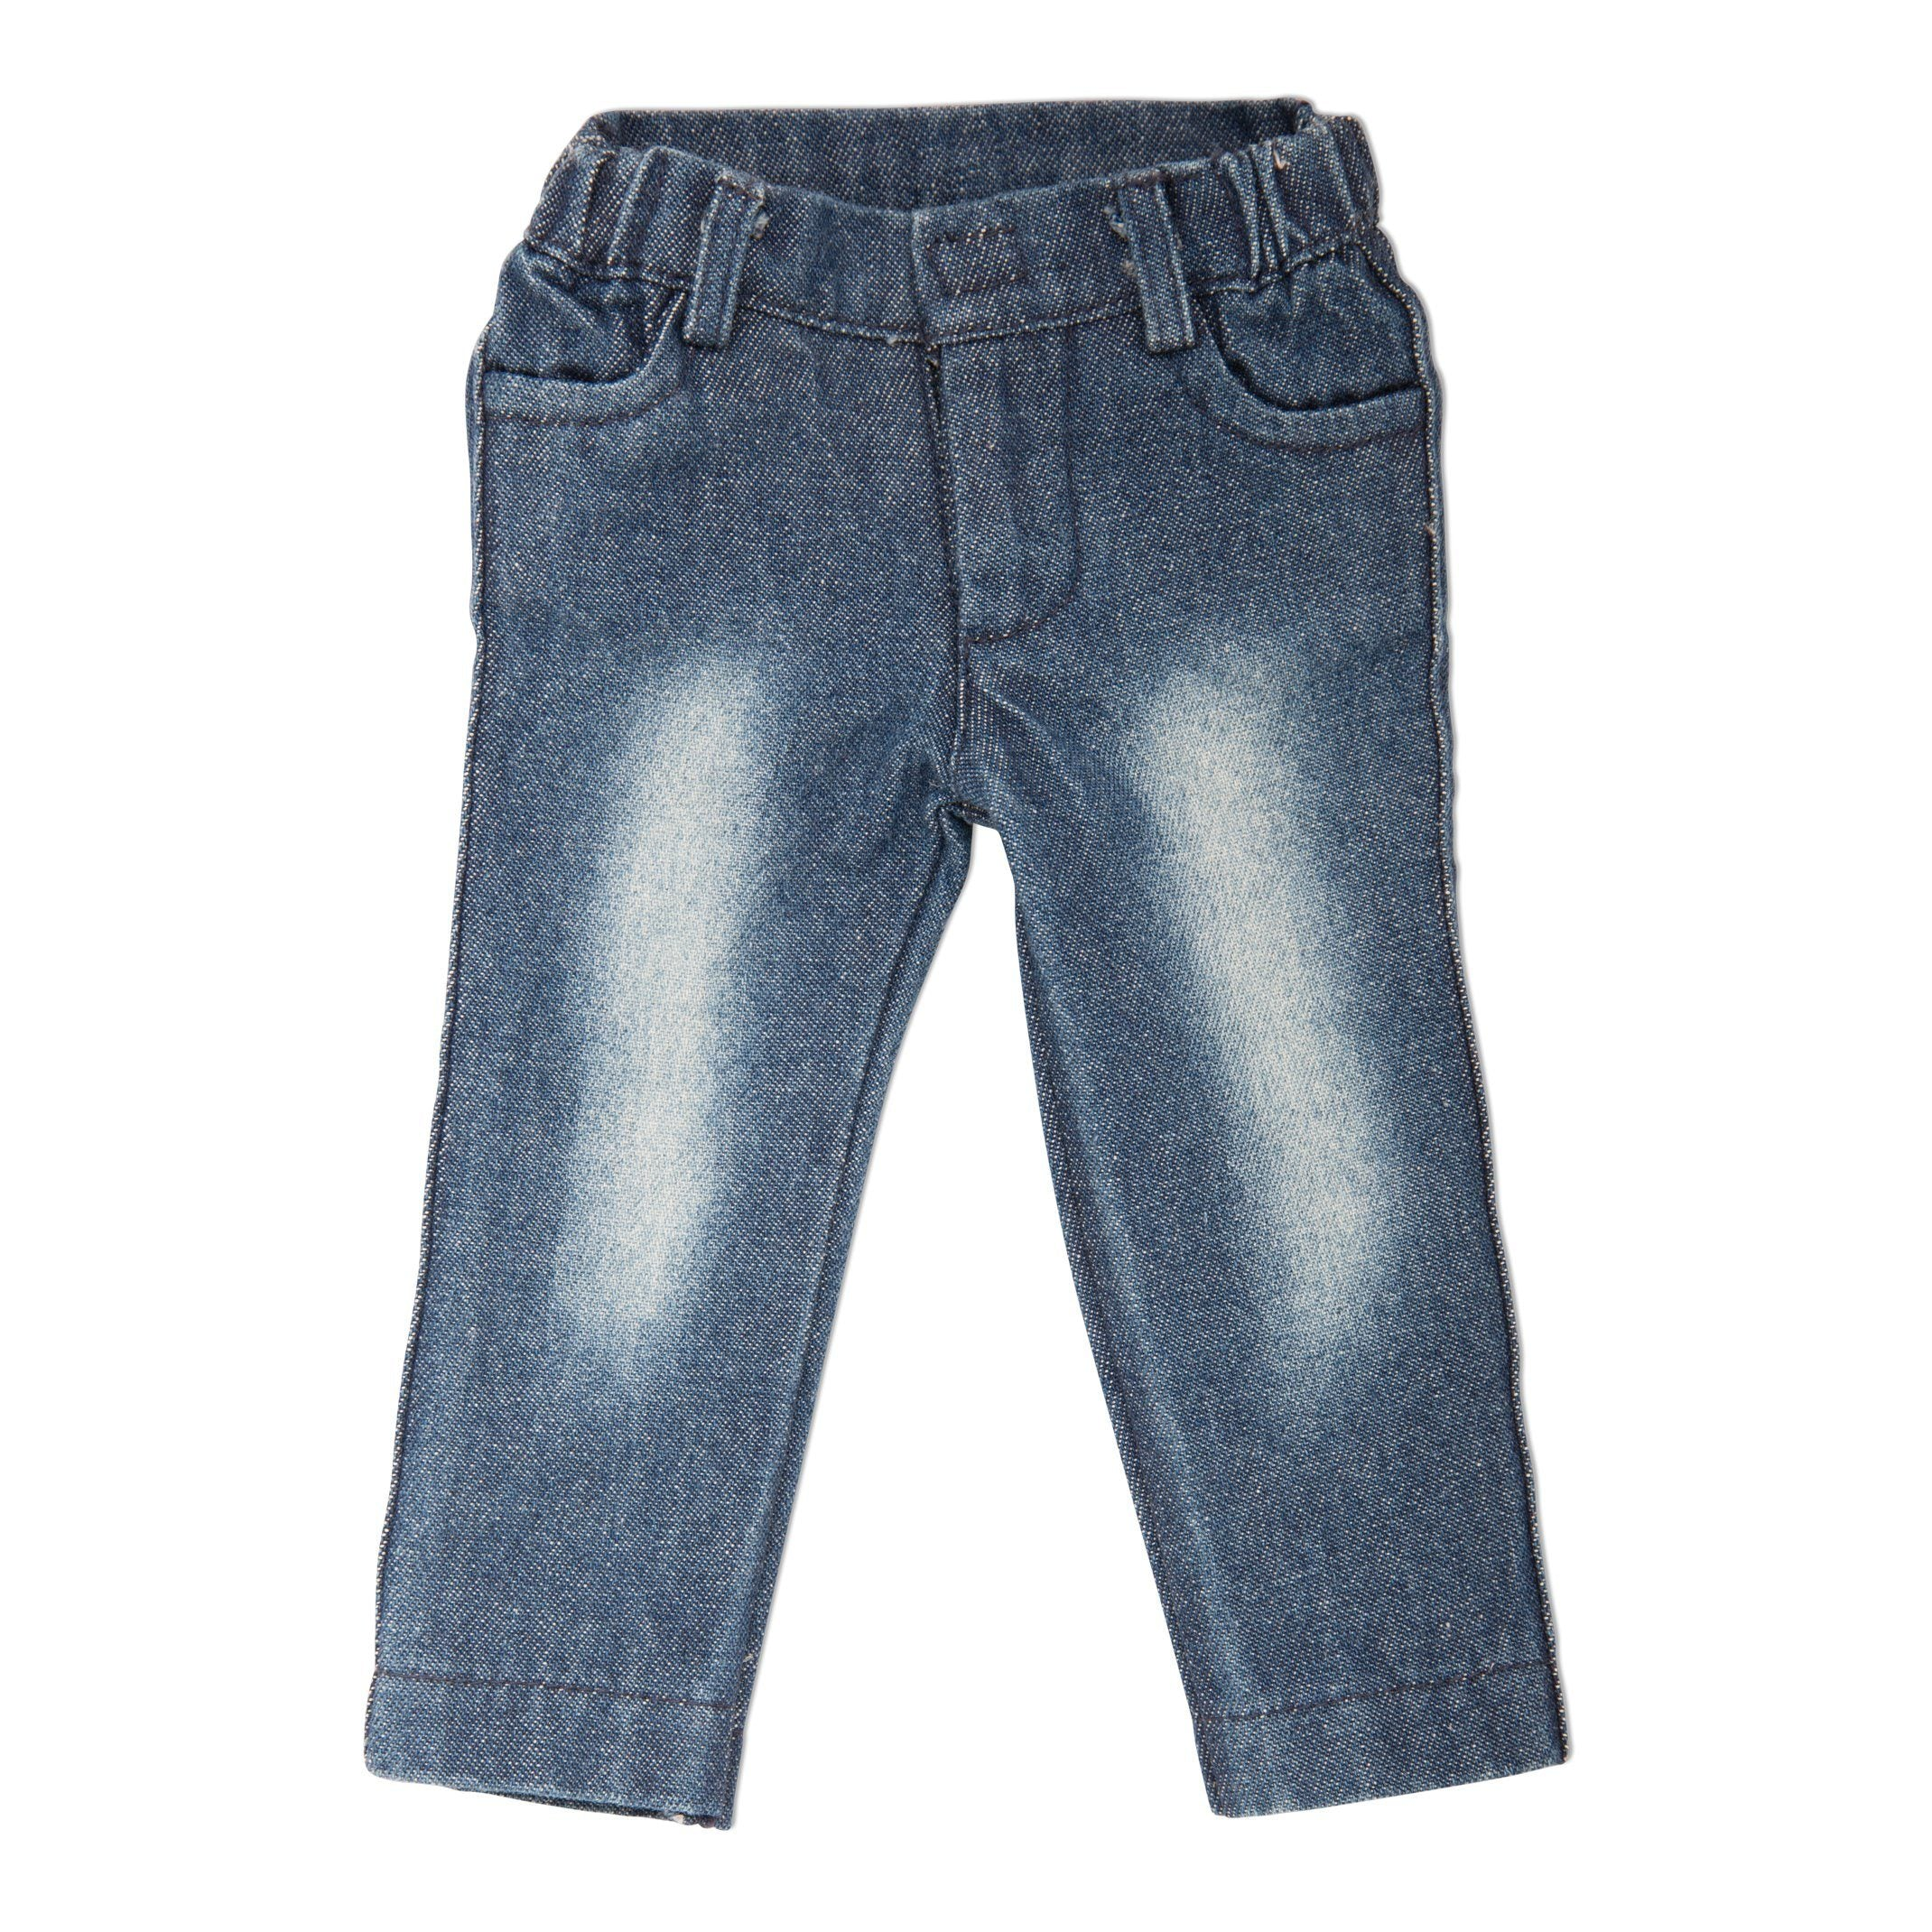 Distressed washed denim jeans fits all 18 inch dolls.